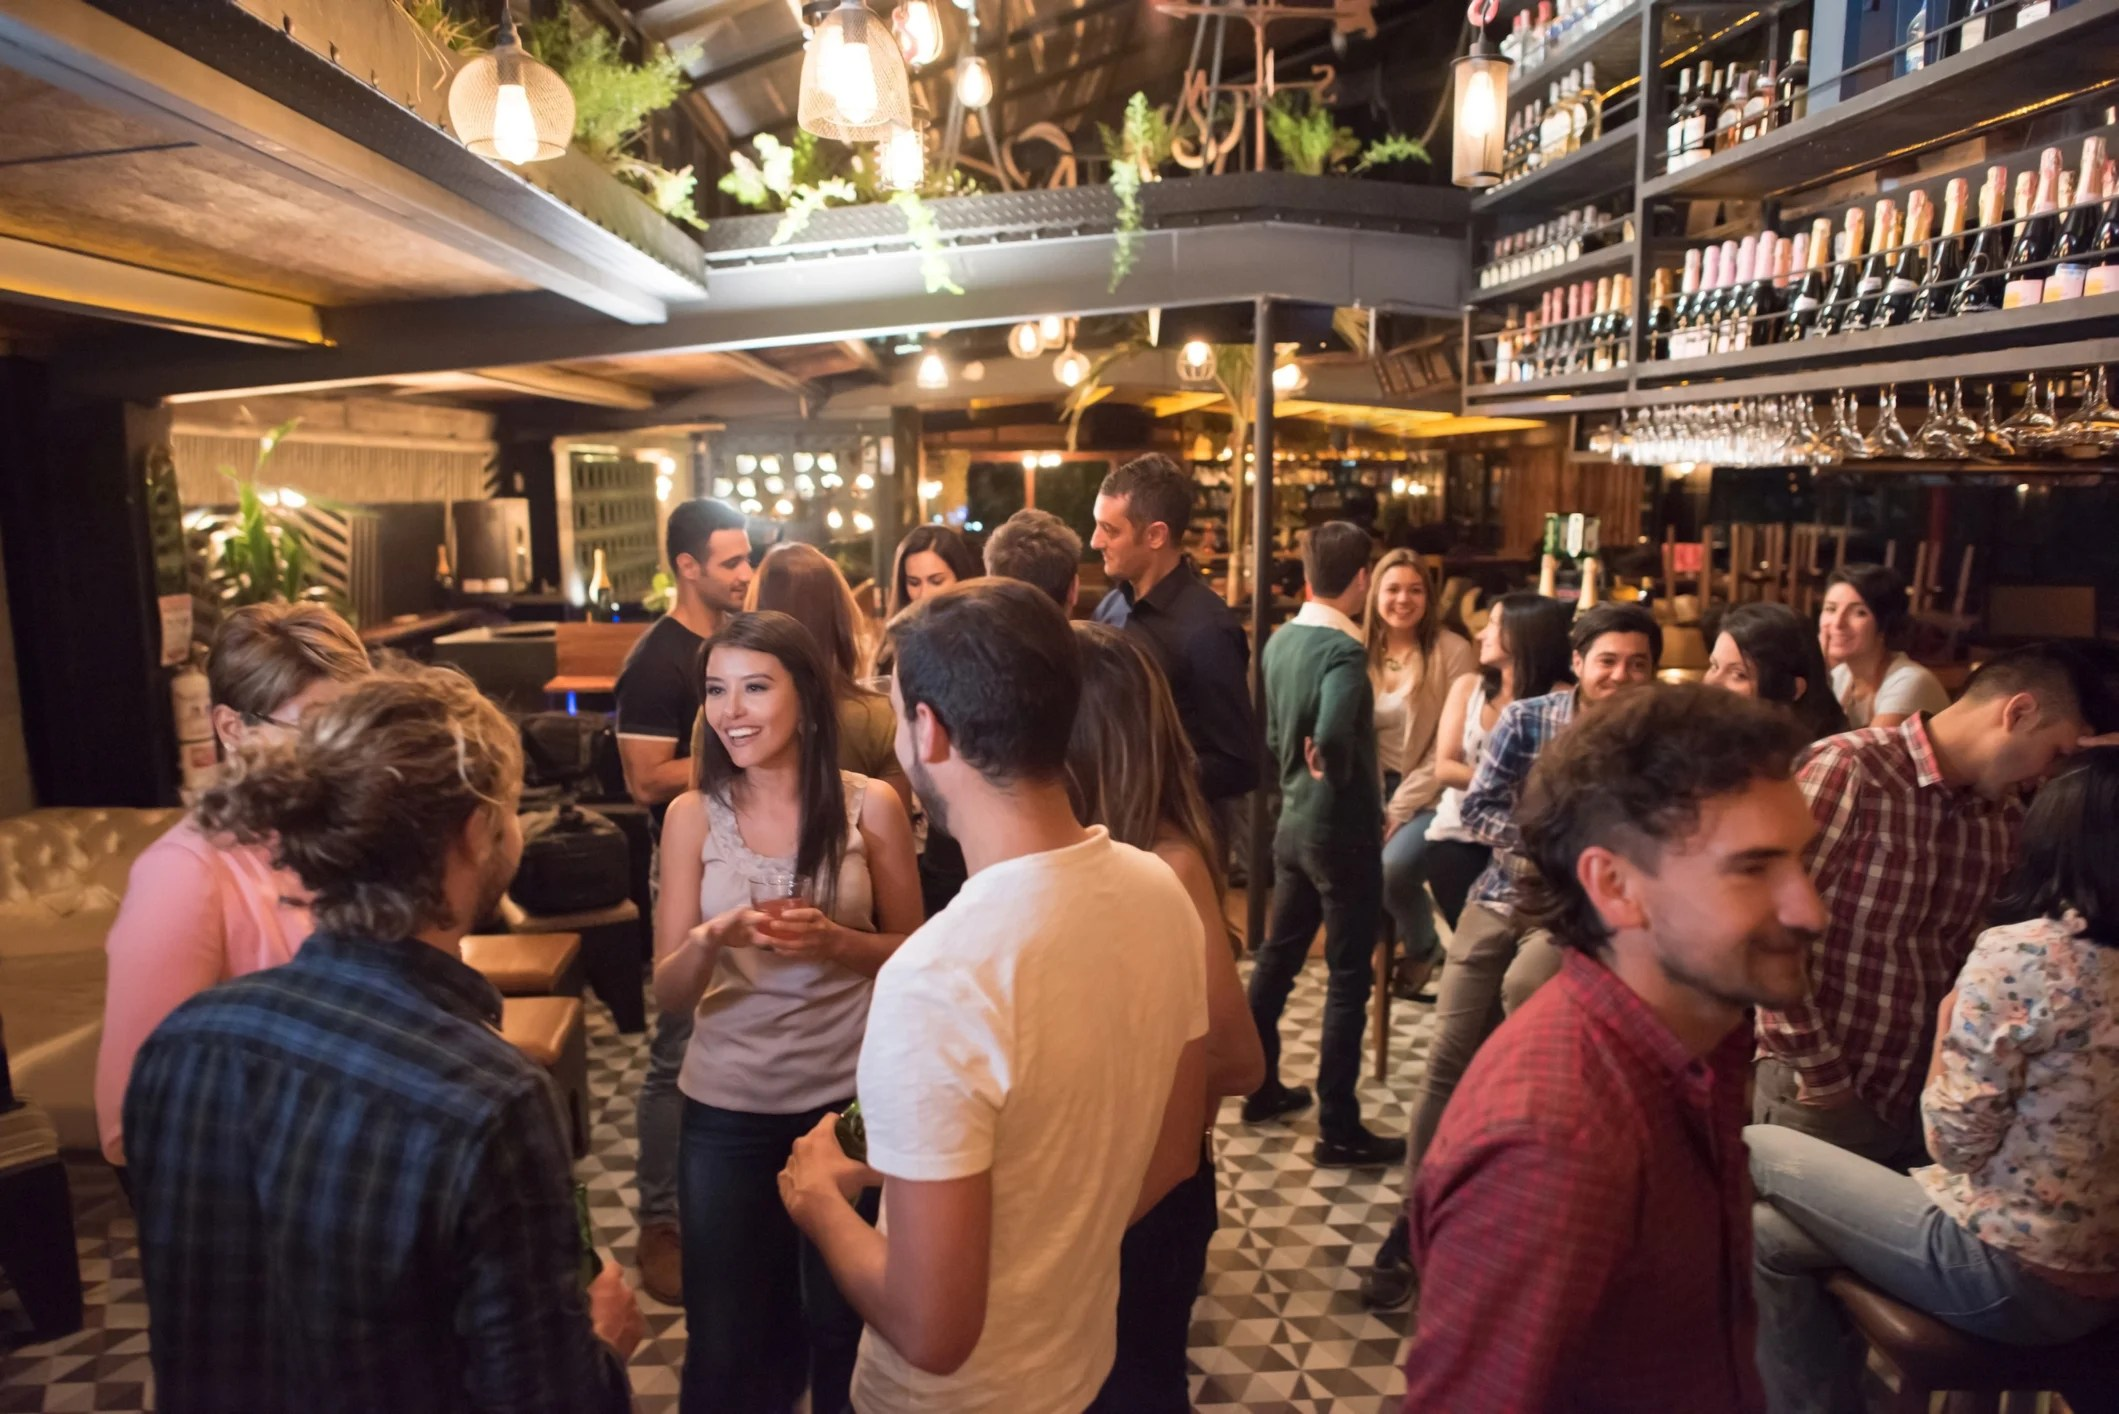 Join TPG UK in London for our second AvGeek pub quiz event